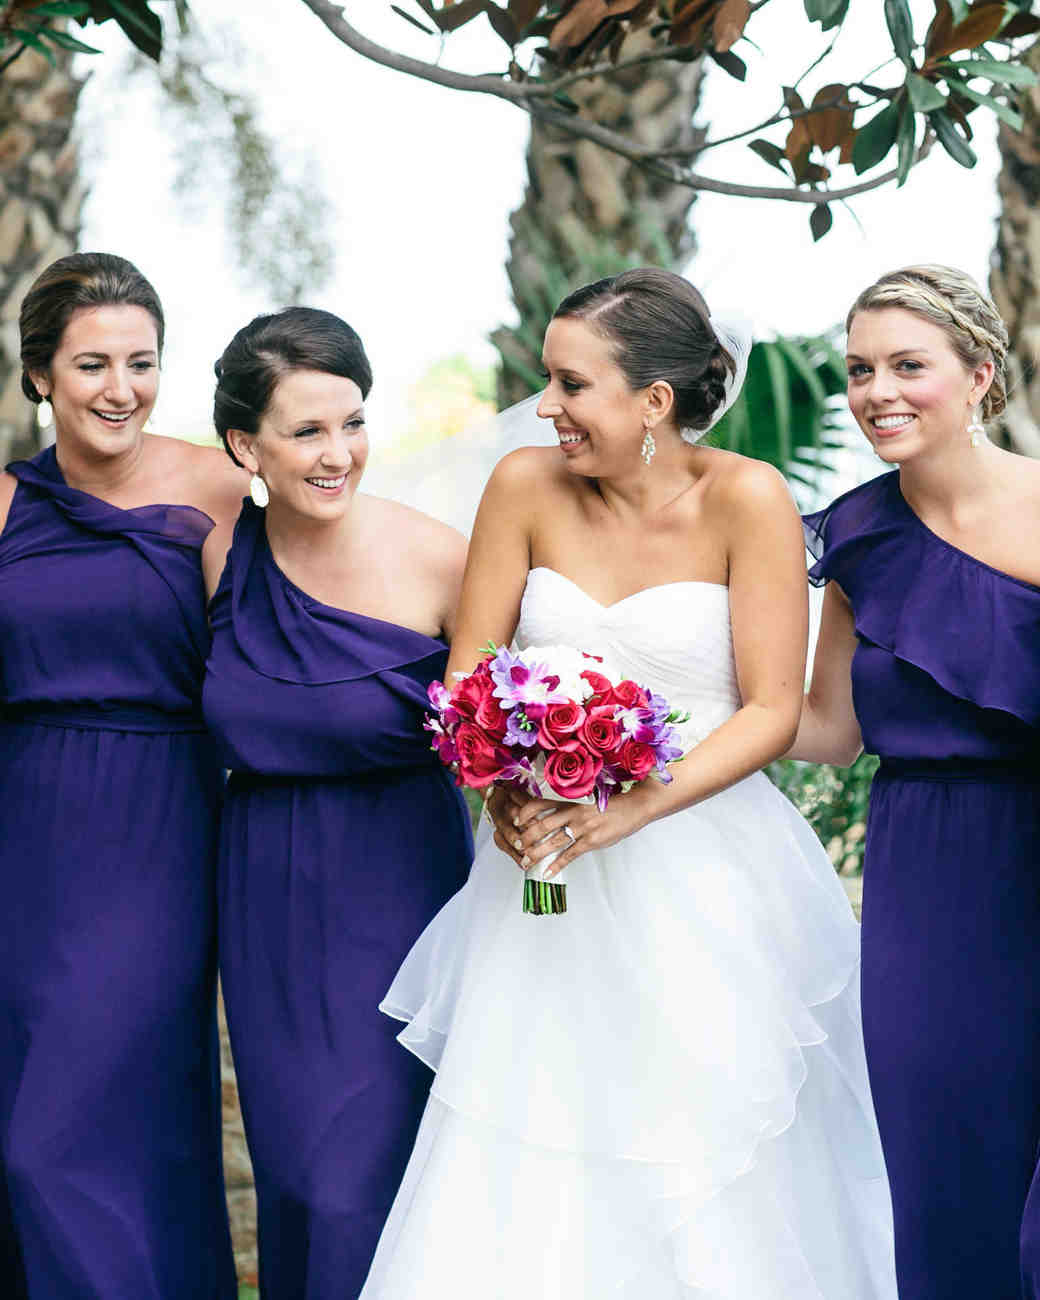 amethyst bridesmaid dresses